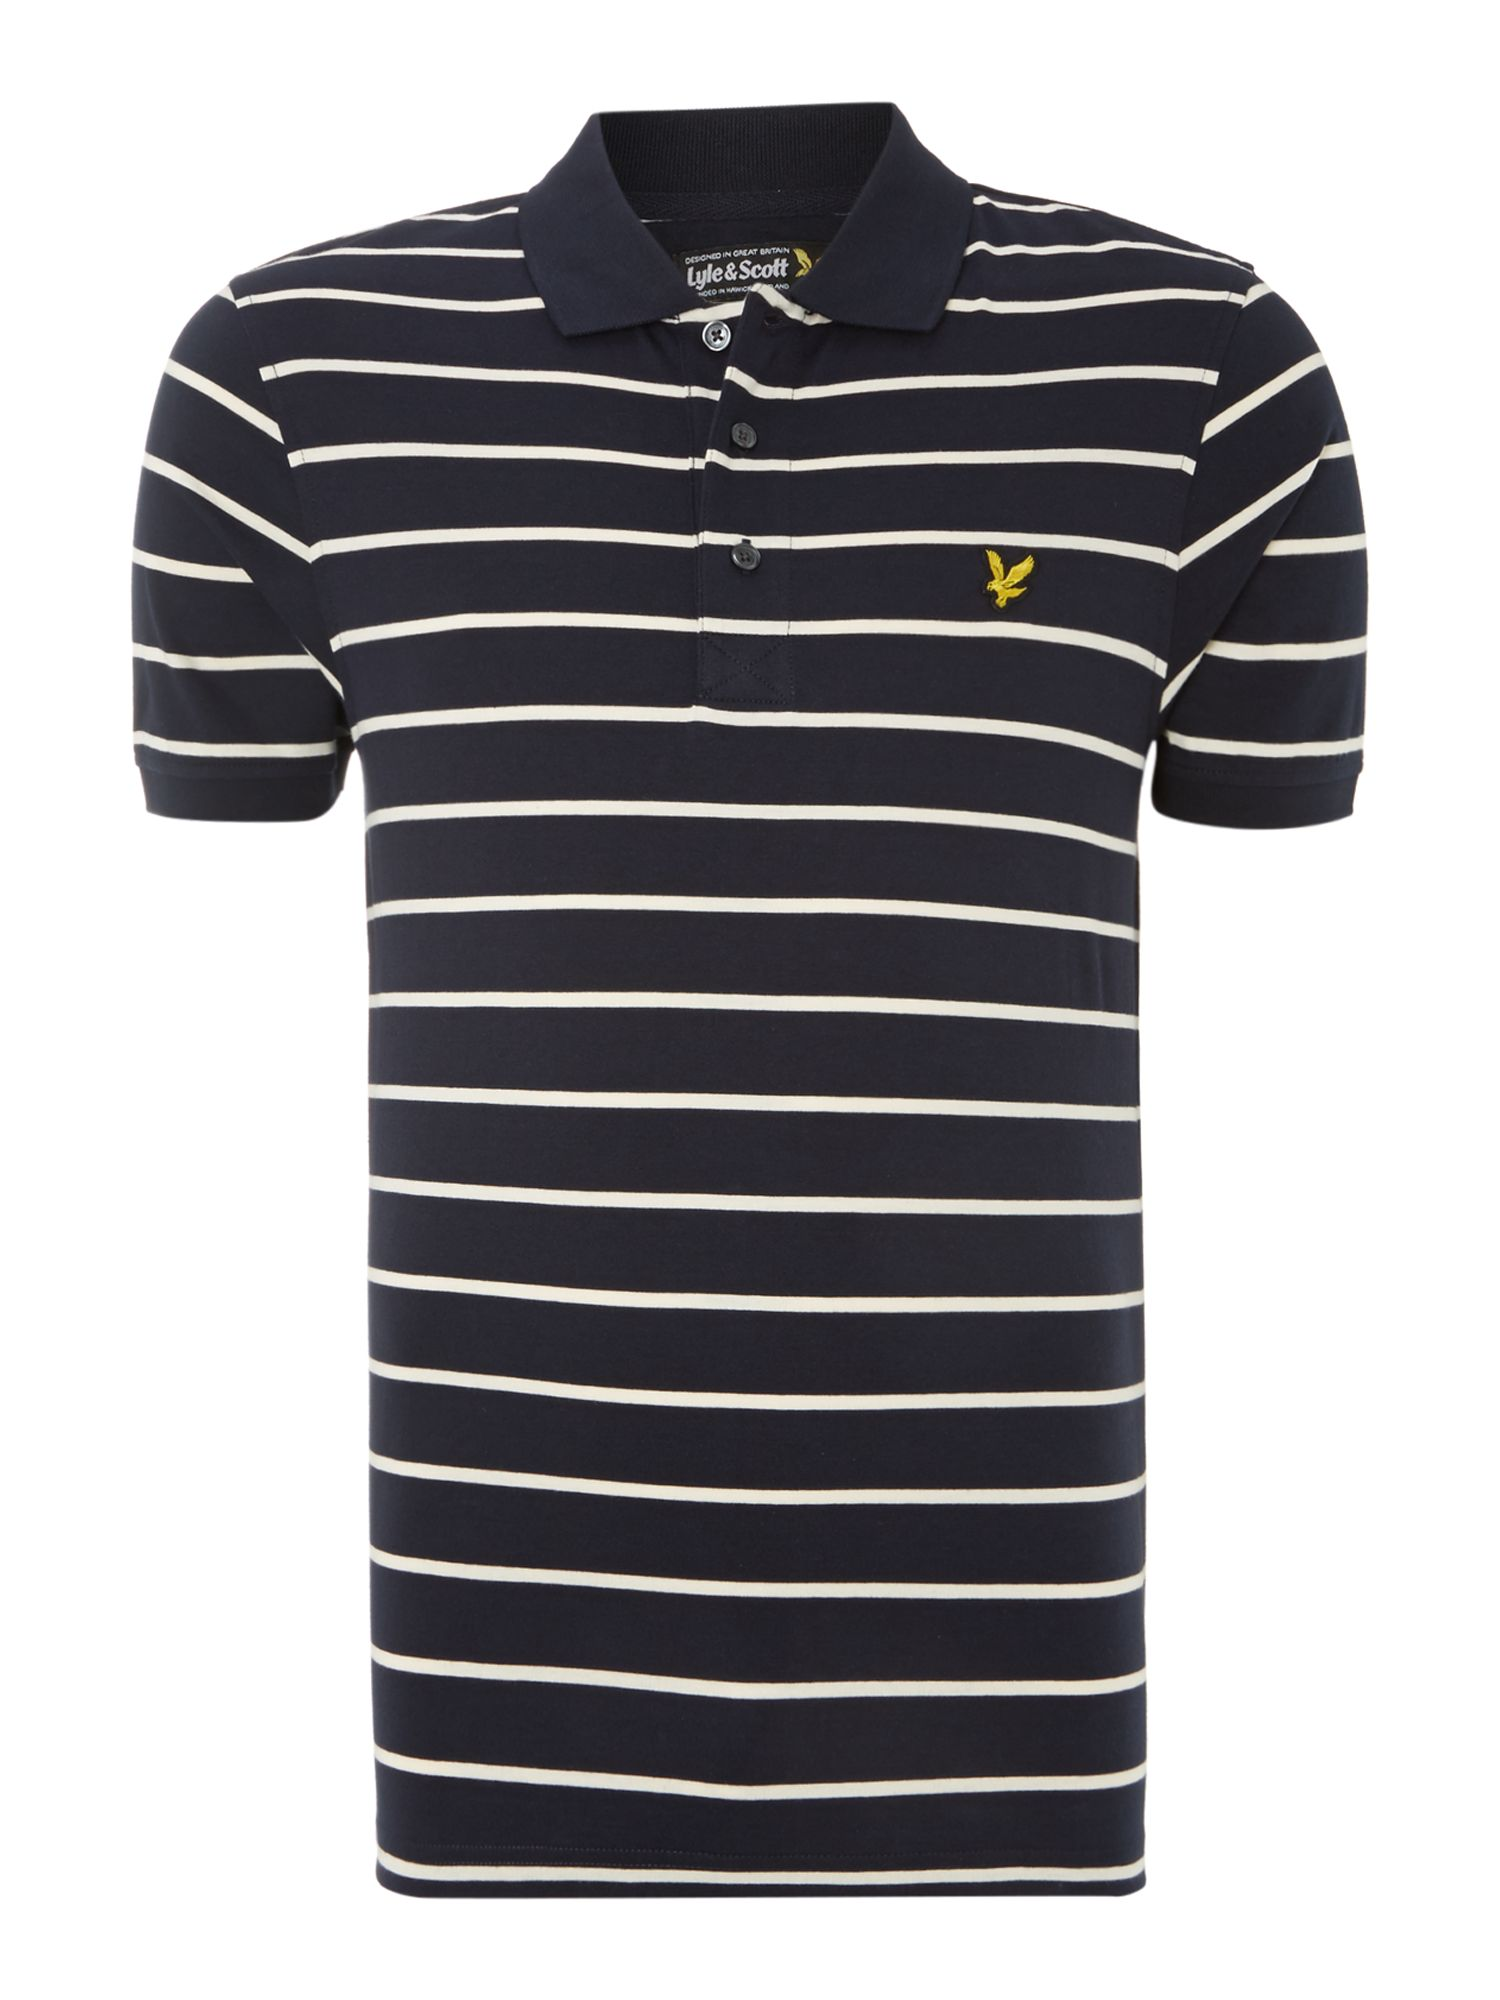 Regular fit breton stripe polo shirt